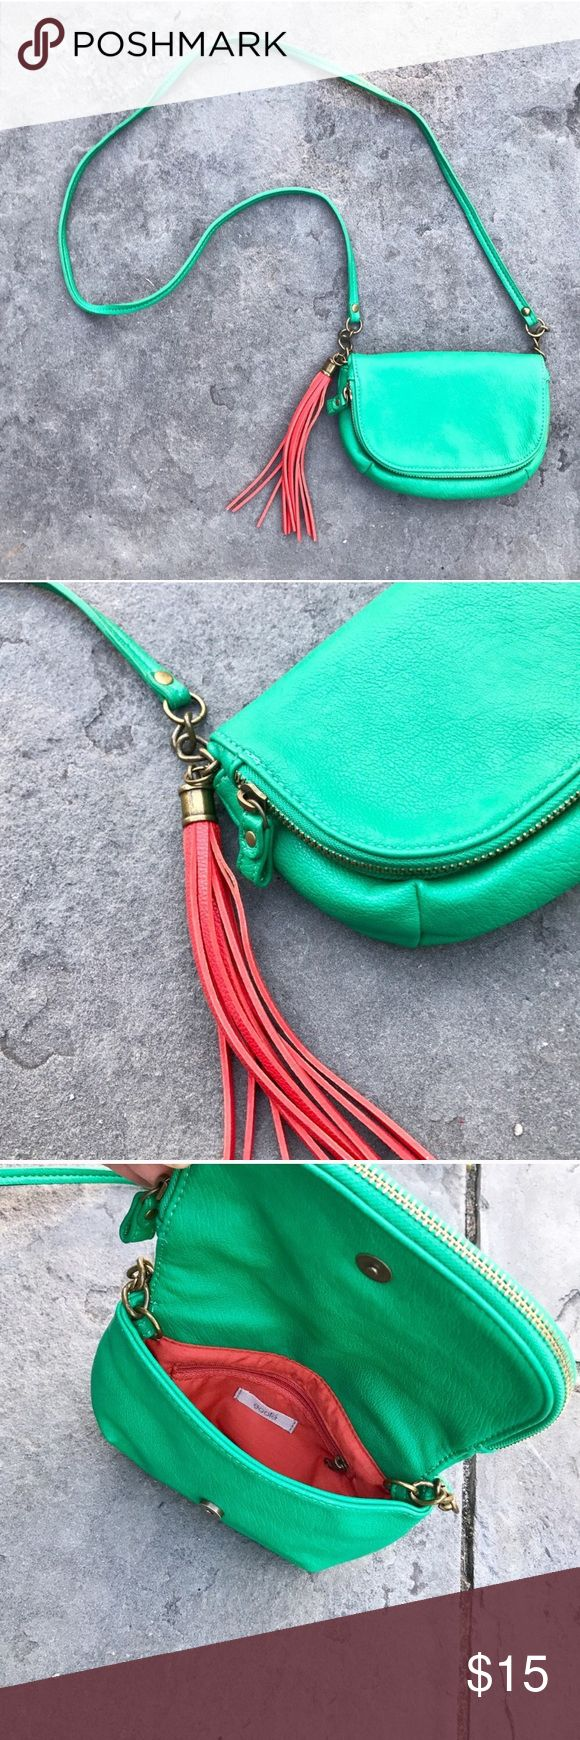 Urban Outfitters Purse A statement making green shoulder bag from Urban Outfitters. Ecote is the marked brand. It has a red/orange interior and tassel. Multiple pockets. Urban Outfitters Bags Crossbody Bags